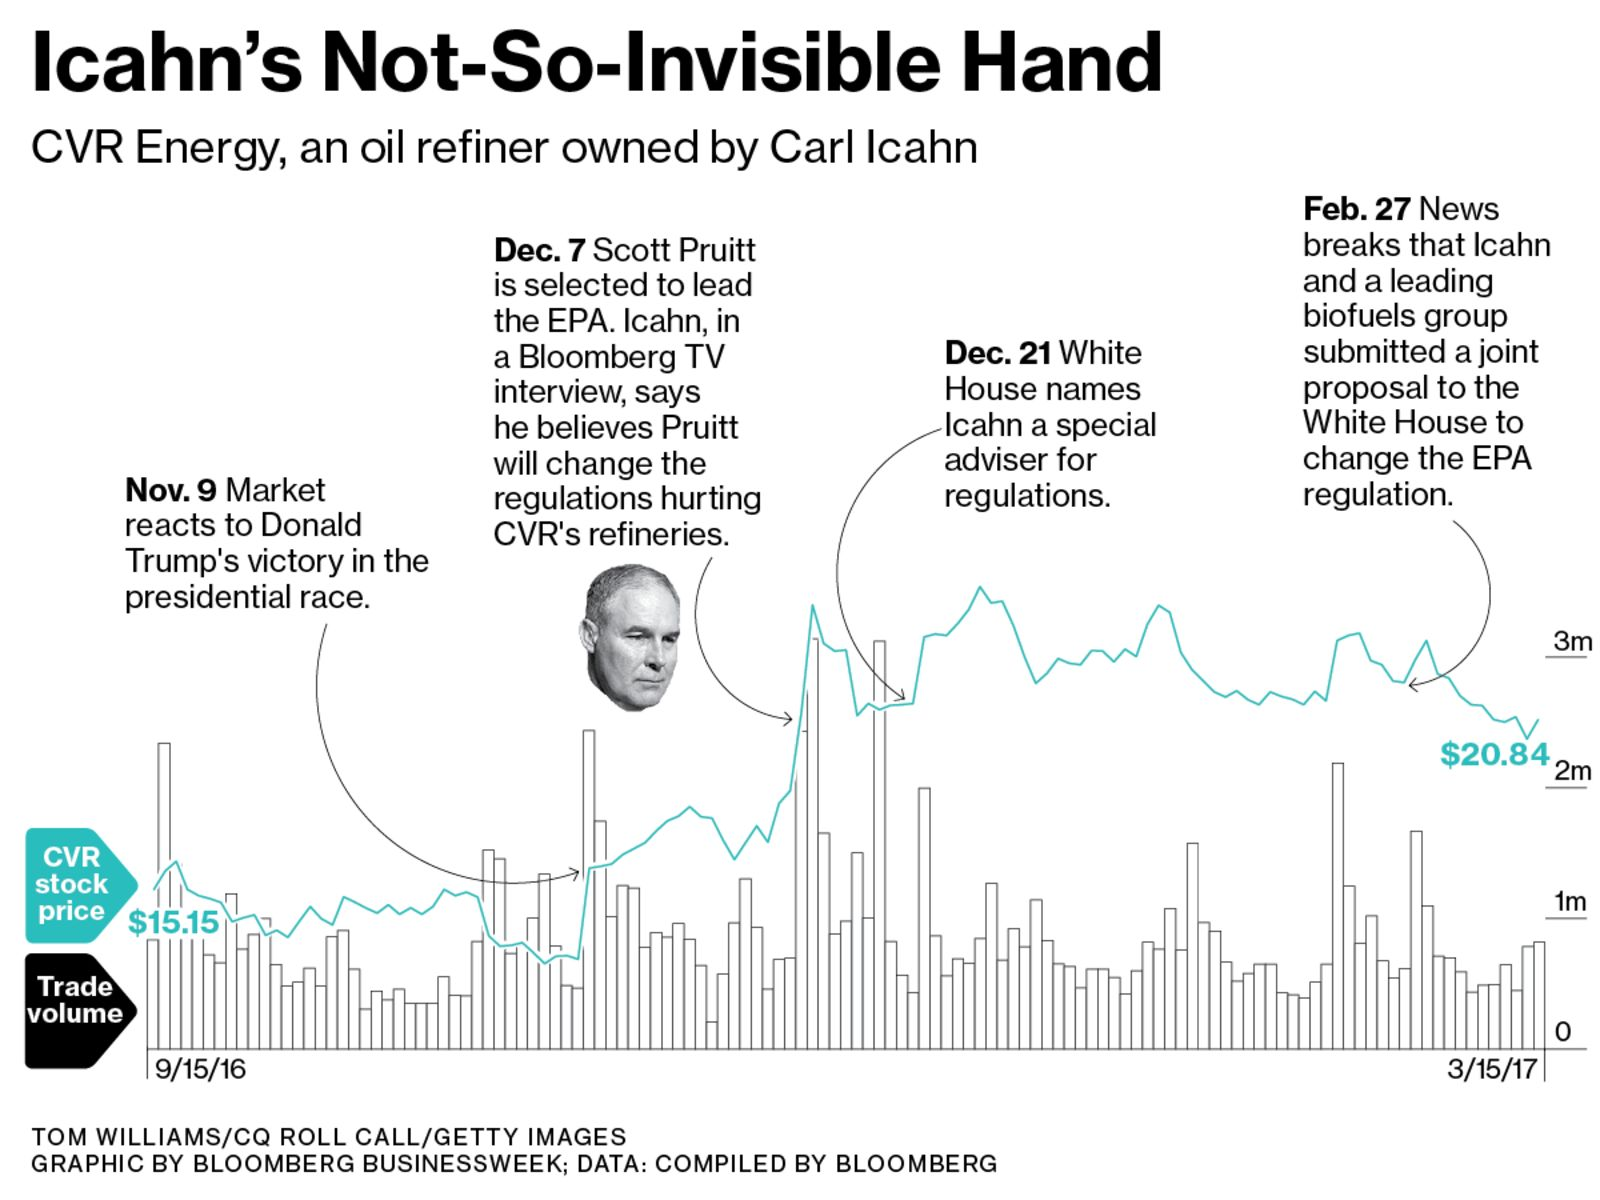 Chart: Icahn's Not-So-Invisible Hand